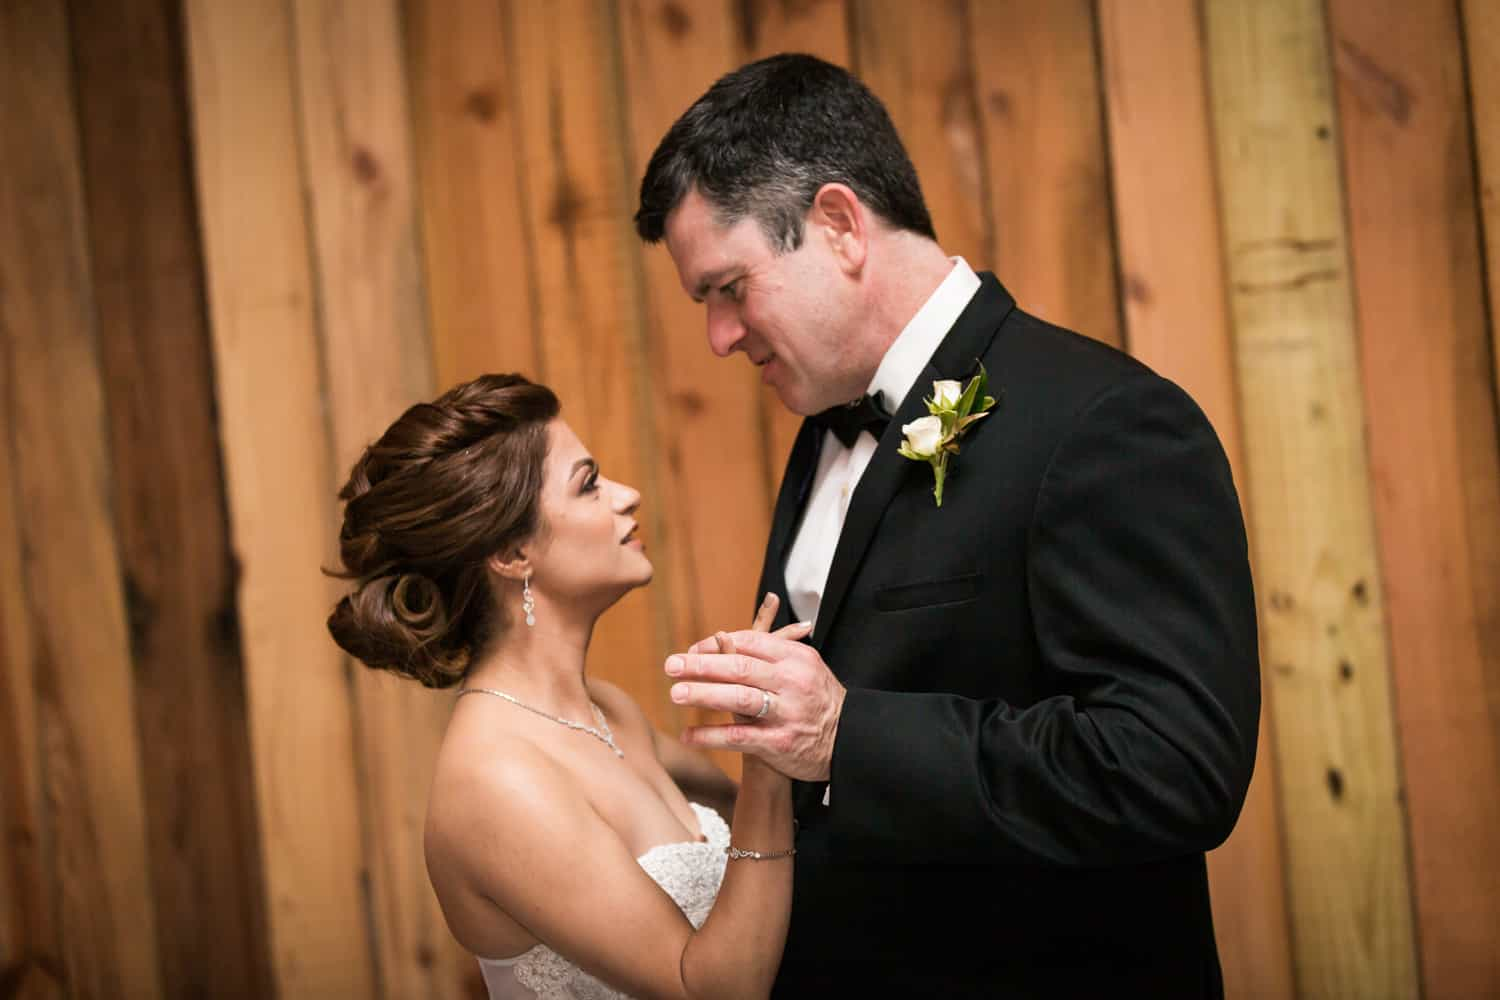 Bride and groom in front of wood wall during first dance